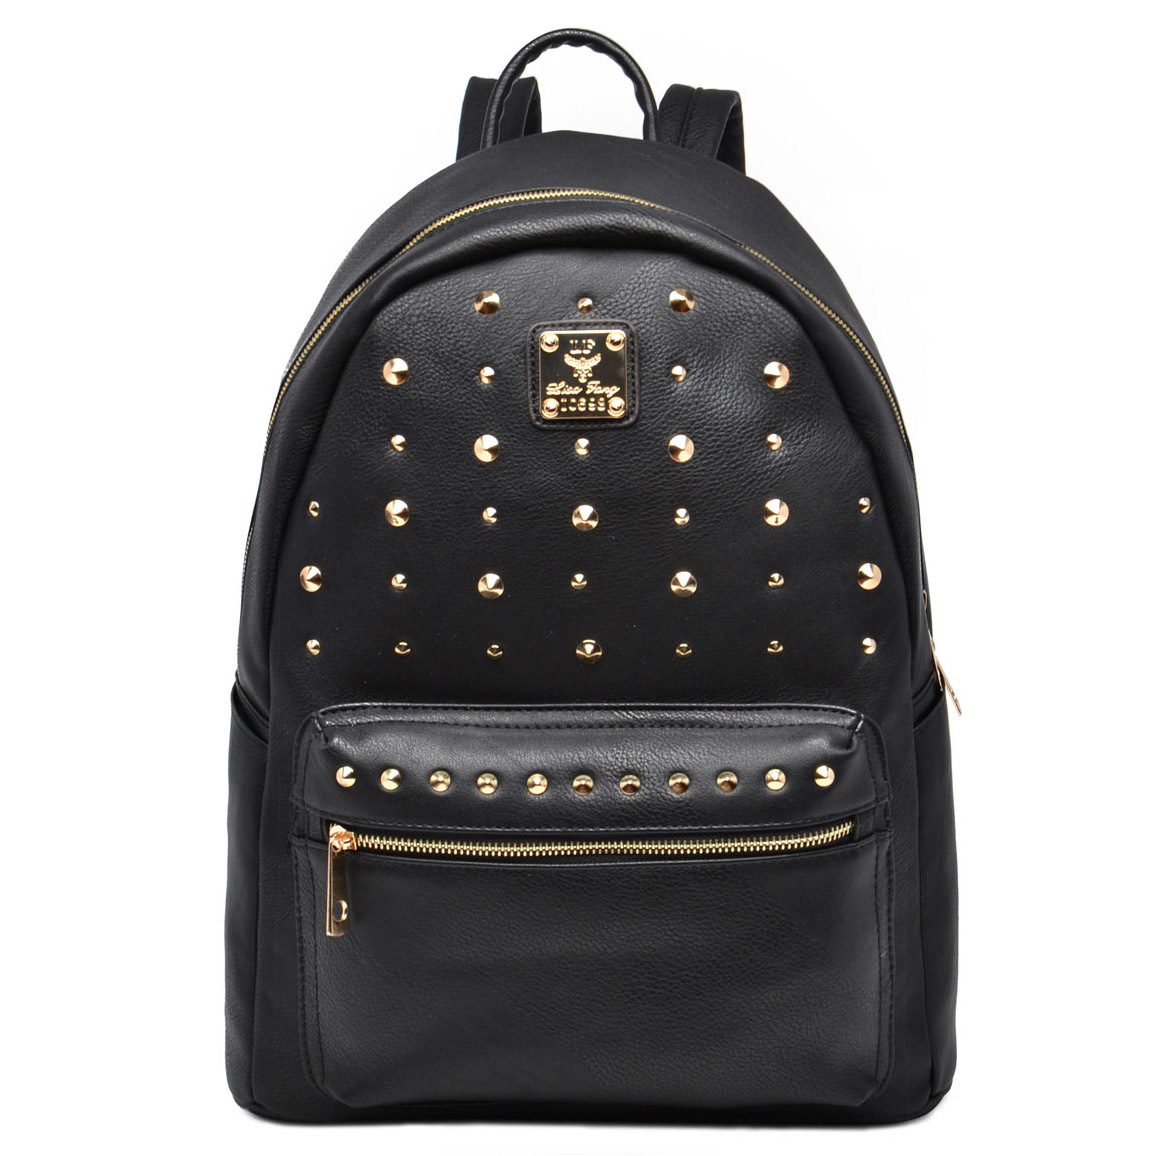 MKF Collection Valo Fashionable Studded Backpack - Black - Check ... 09313f11df9f2